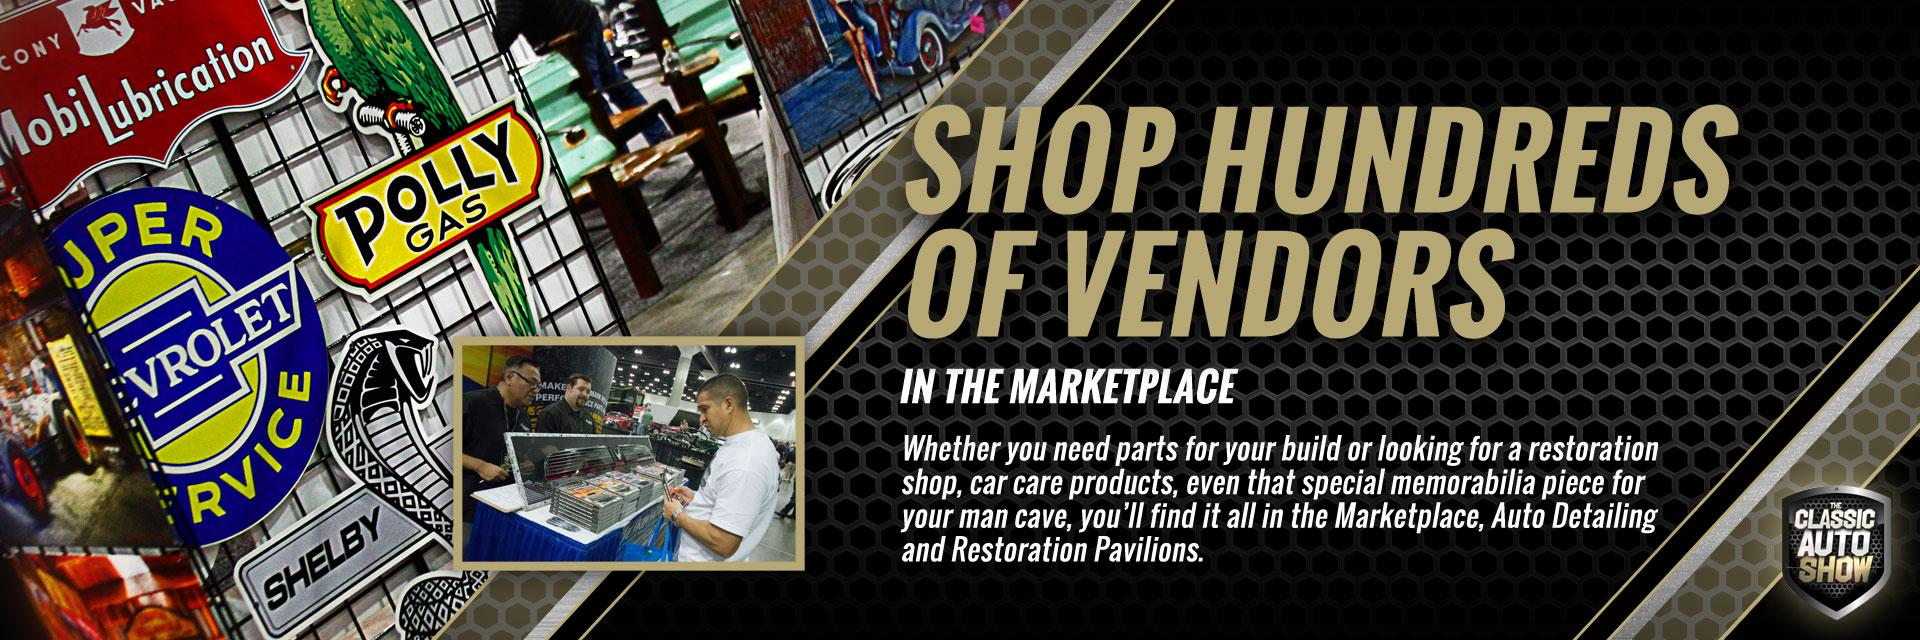 Shop Hundreds of Vendors